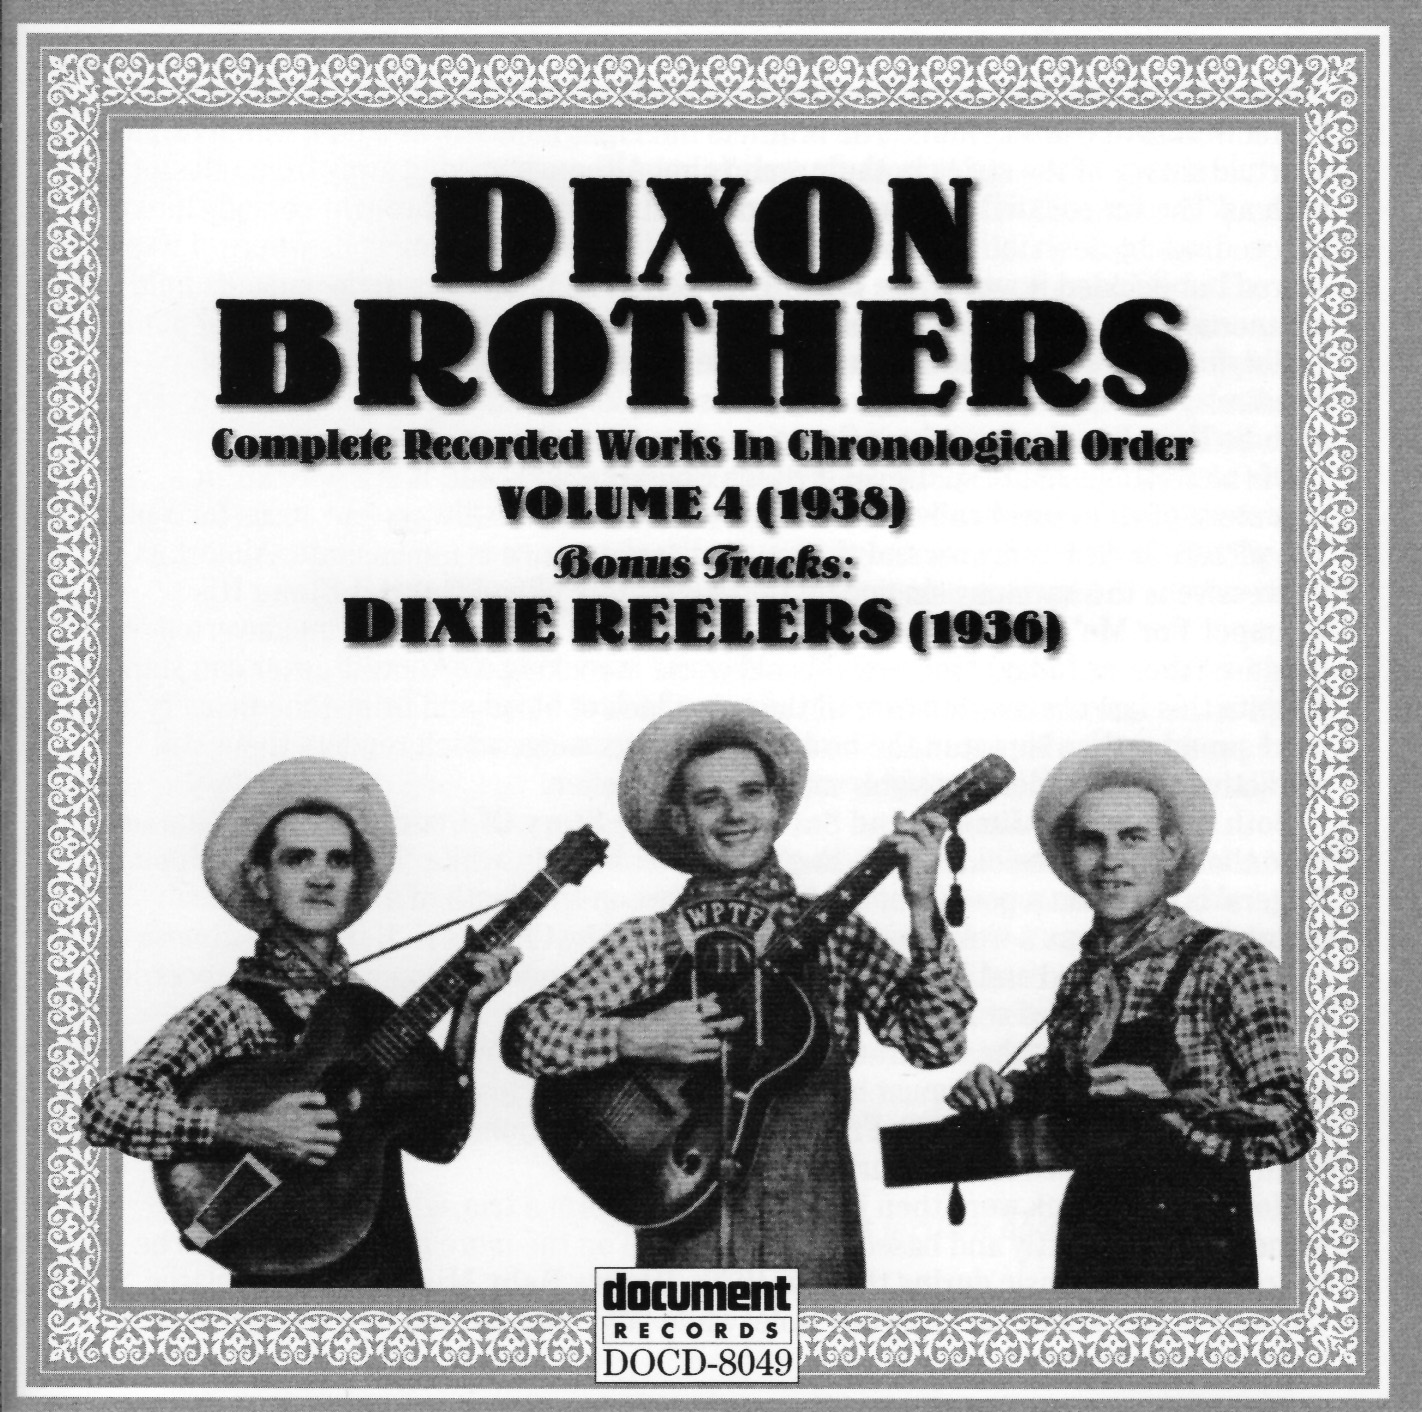 Dixon Brothers Vol  4 (1938) Dixie Reelers (1936) - The